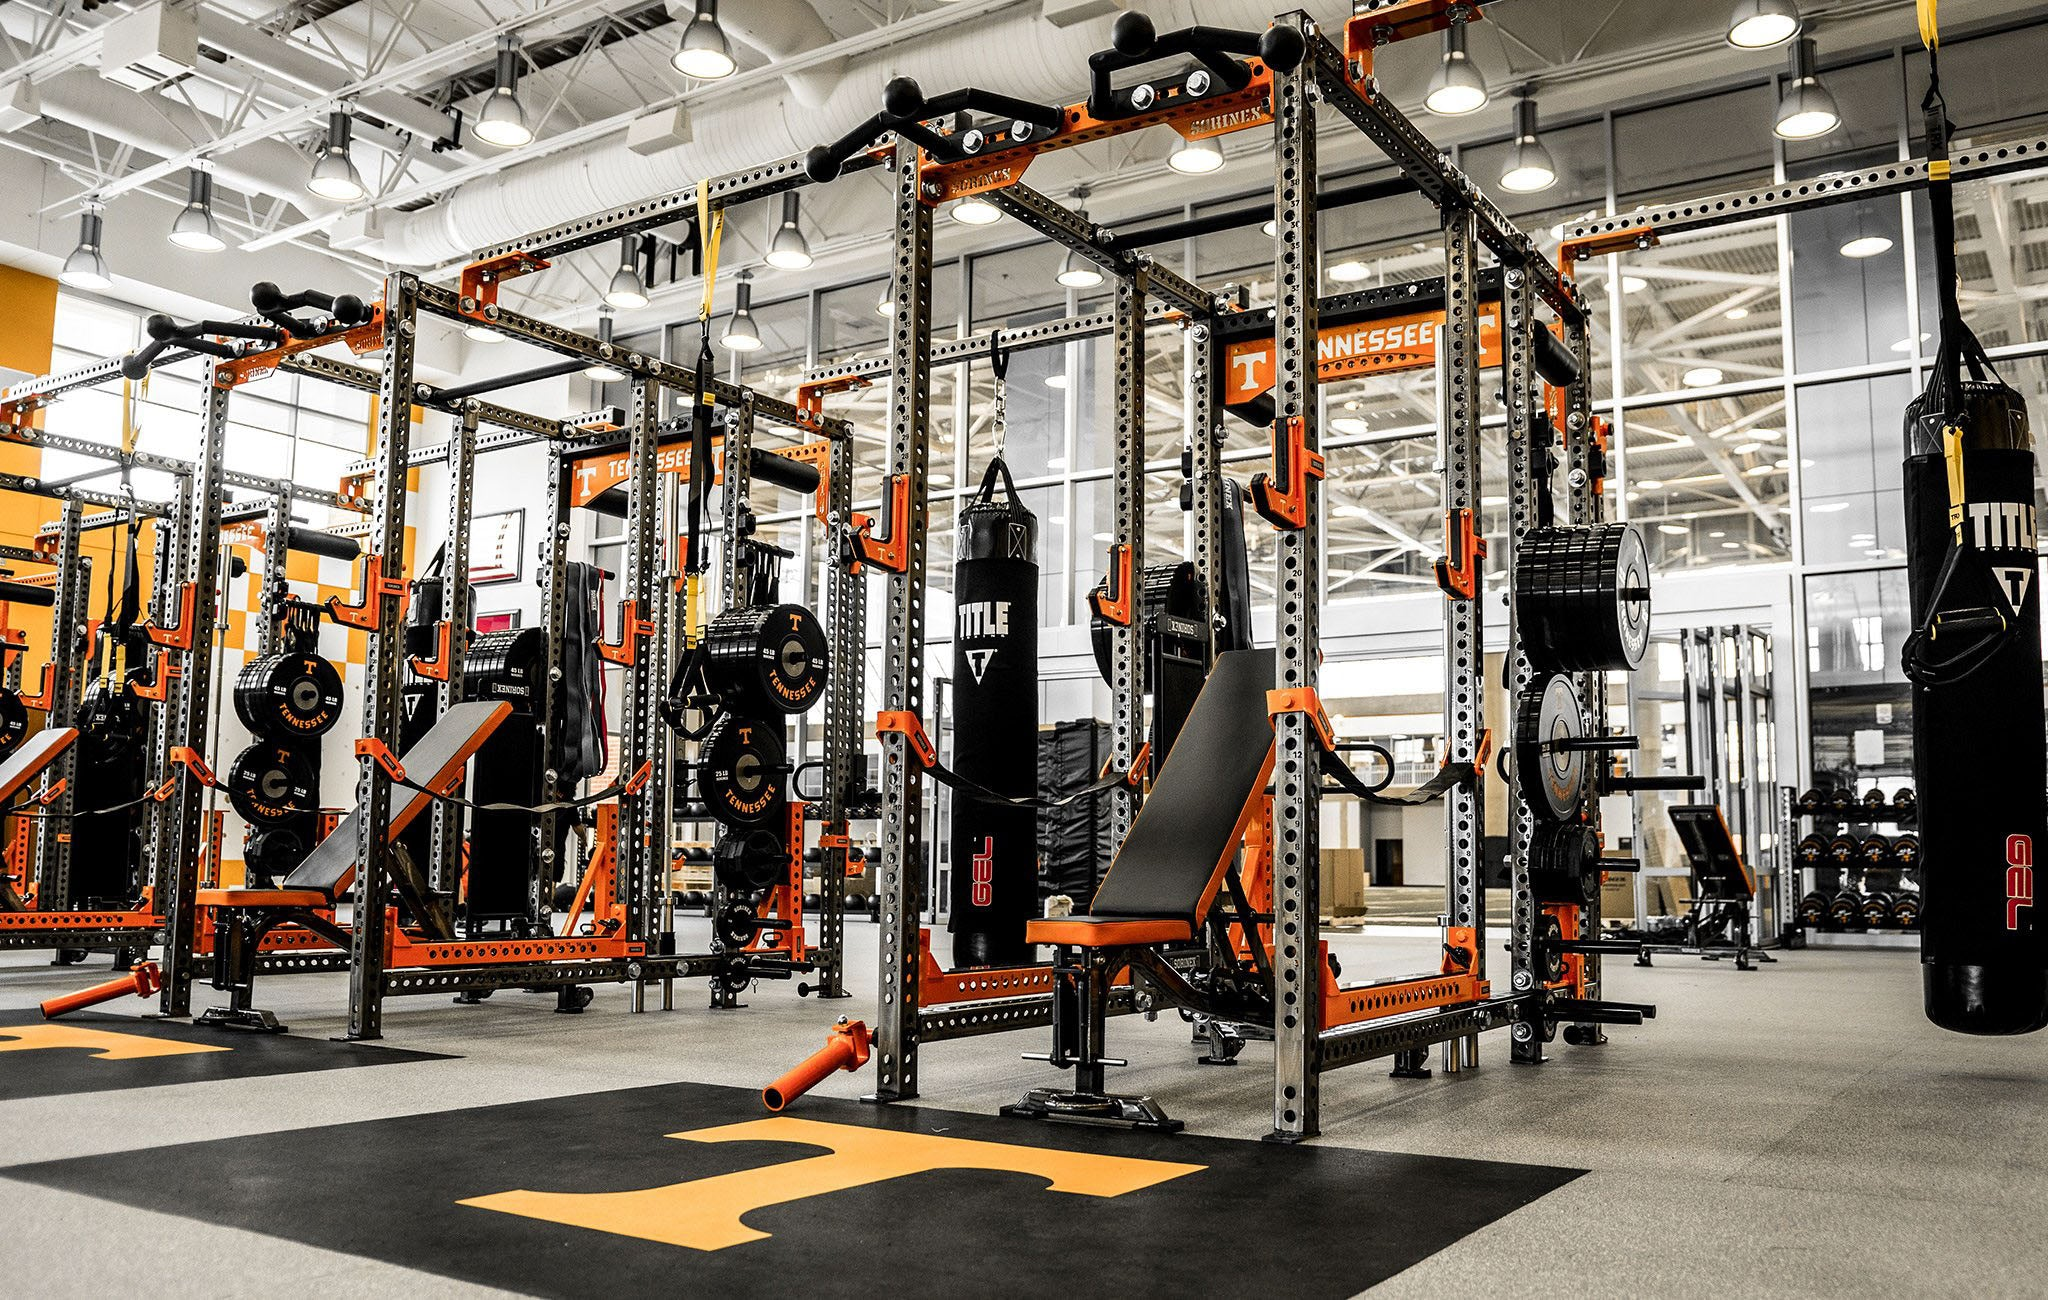 University of Tennessee Base Camp Rack & a Half